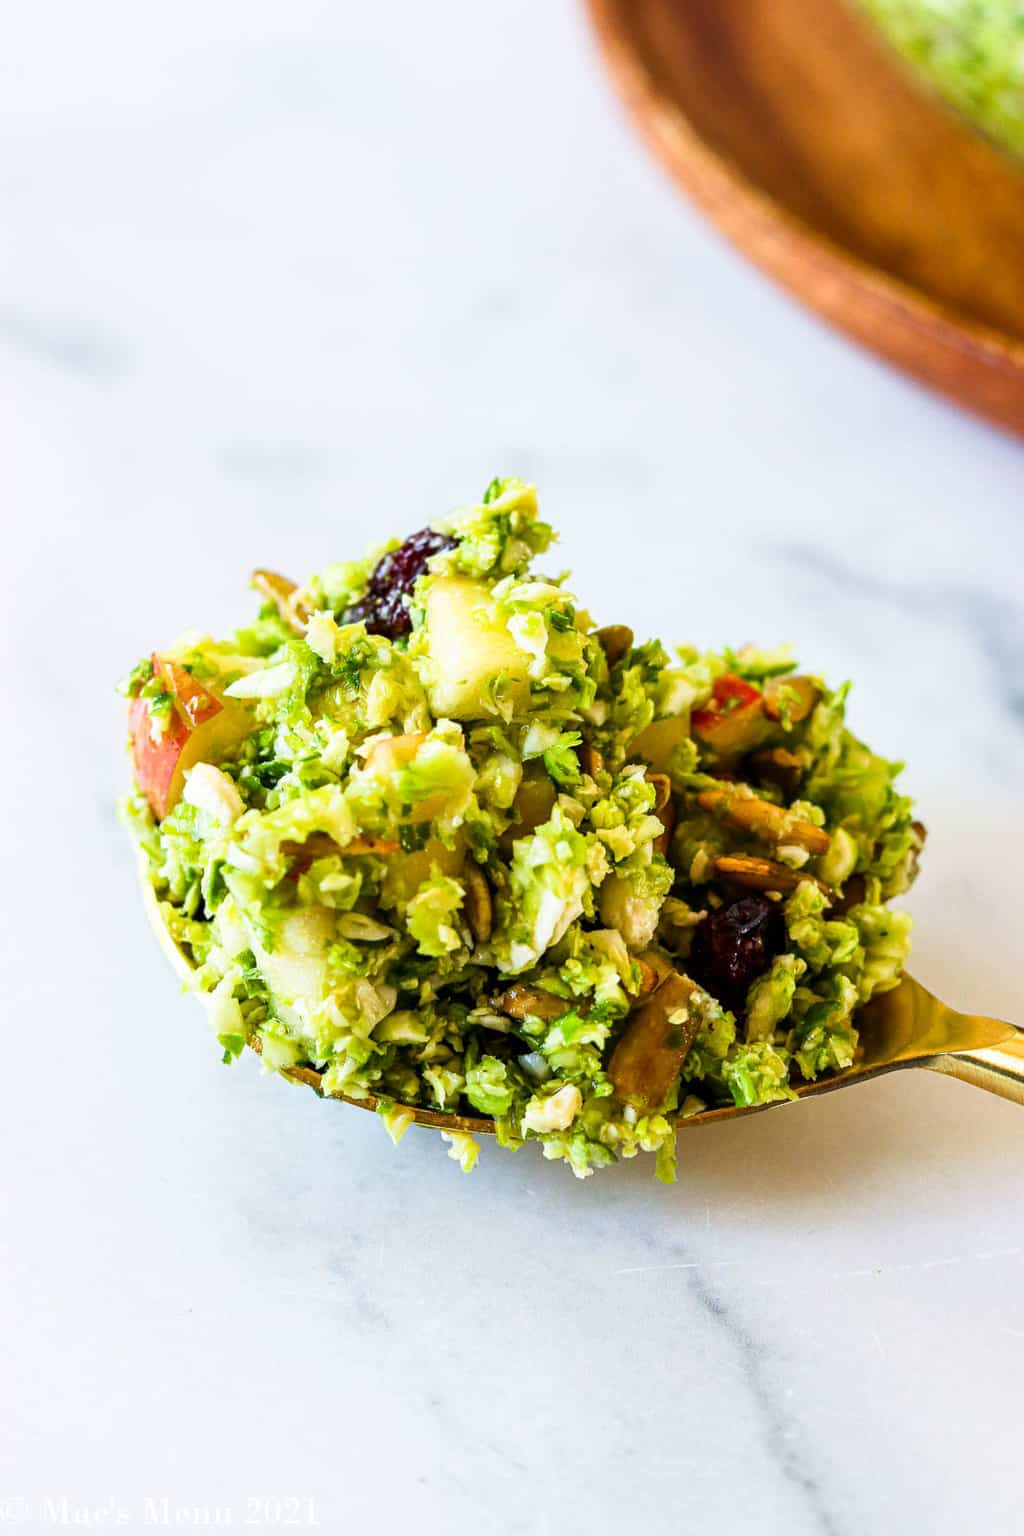 An up-close shot of a large serving spoon with brussels sprouts slaw